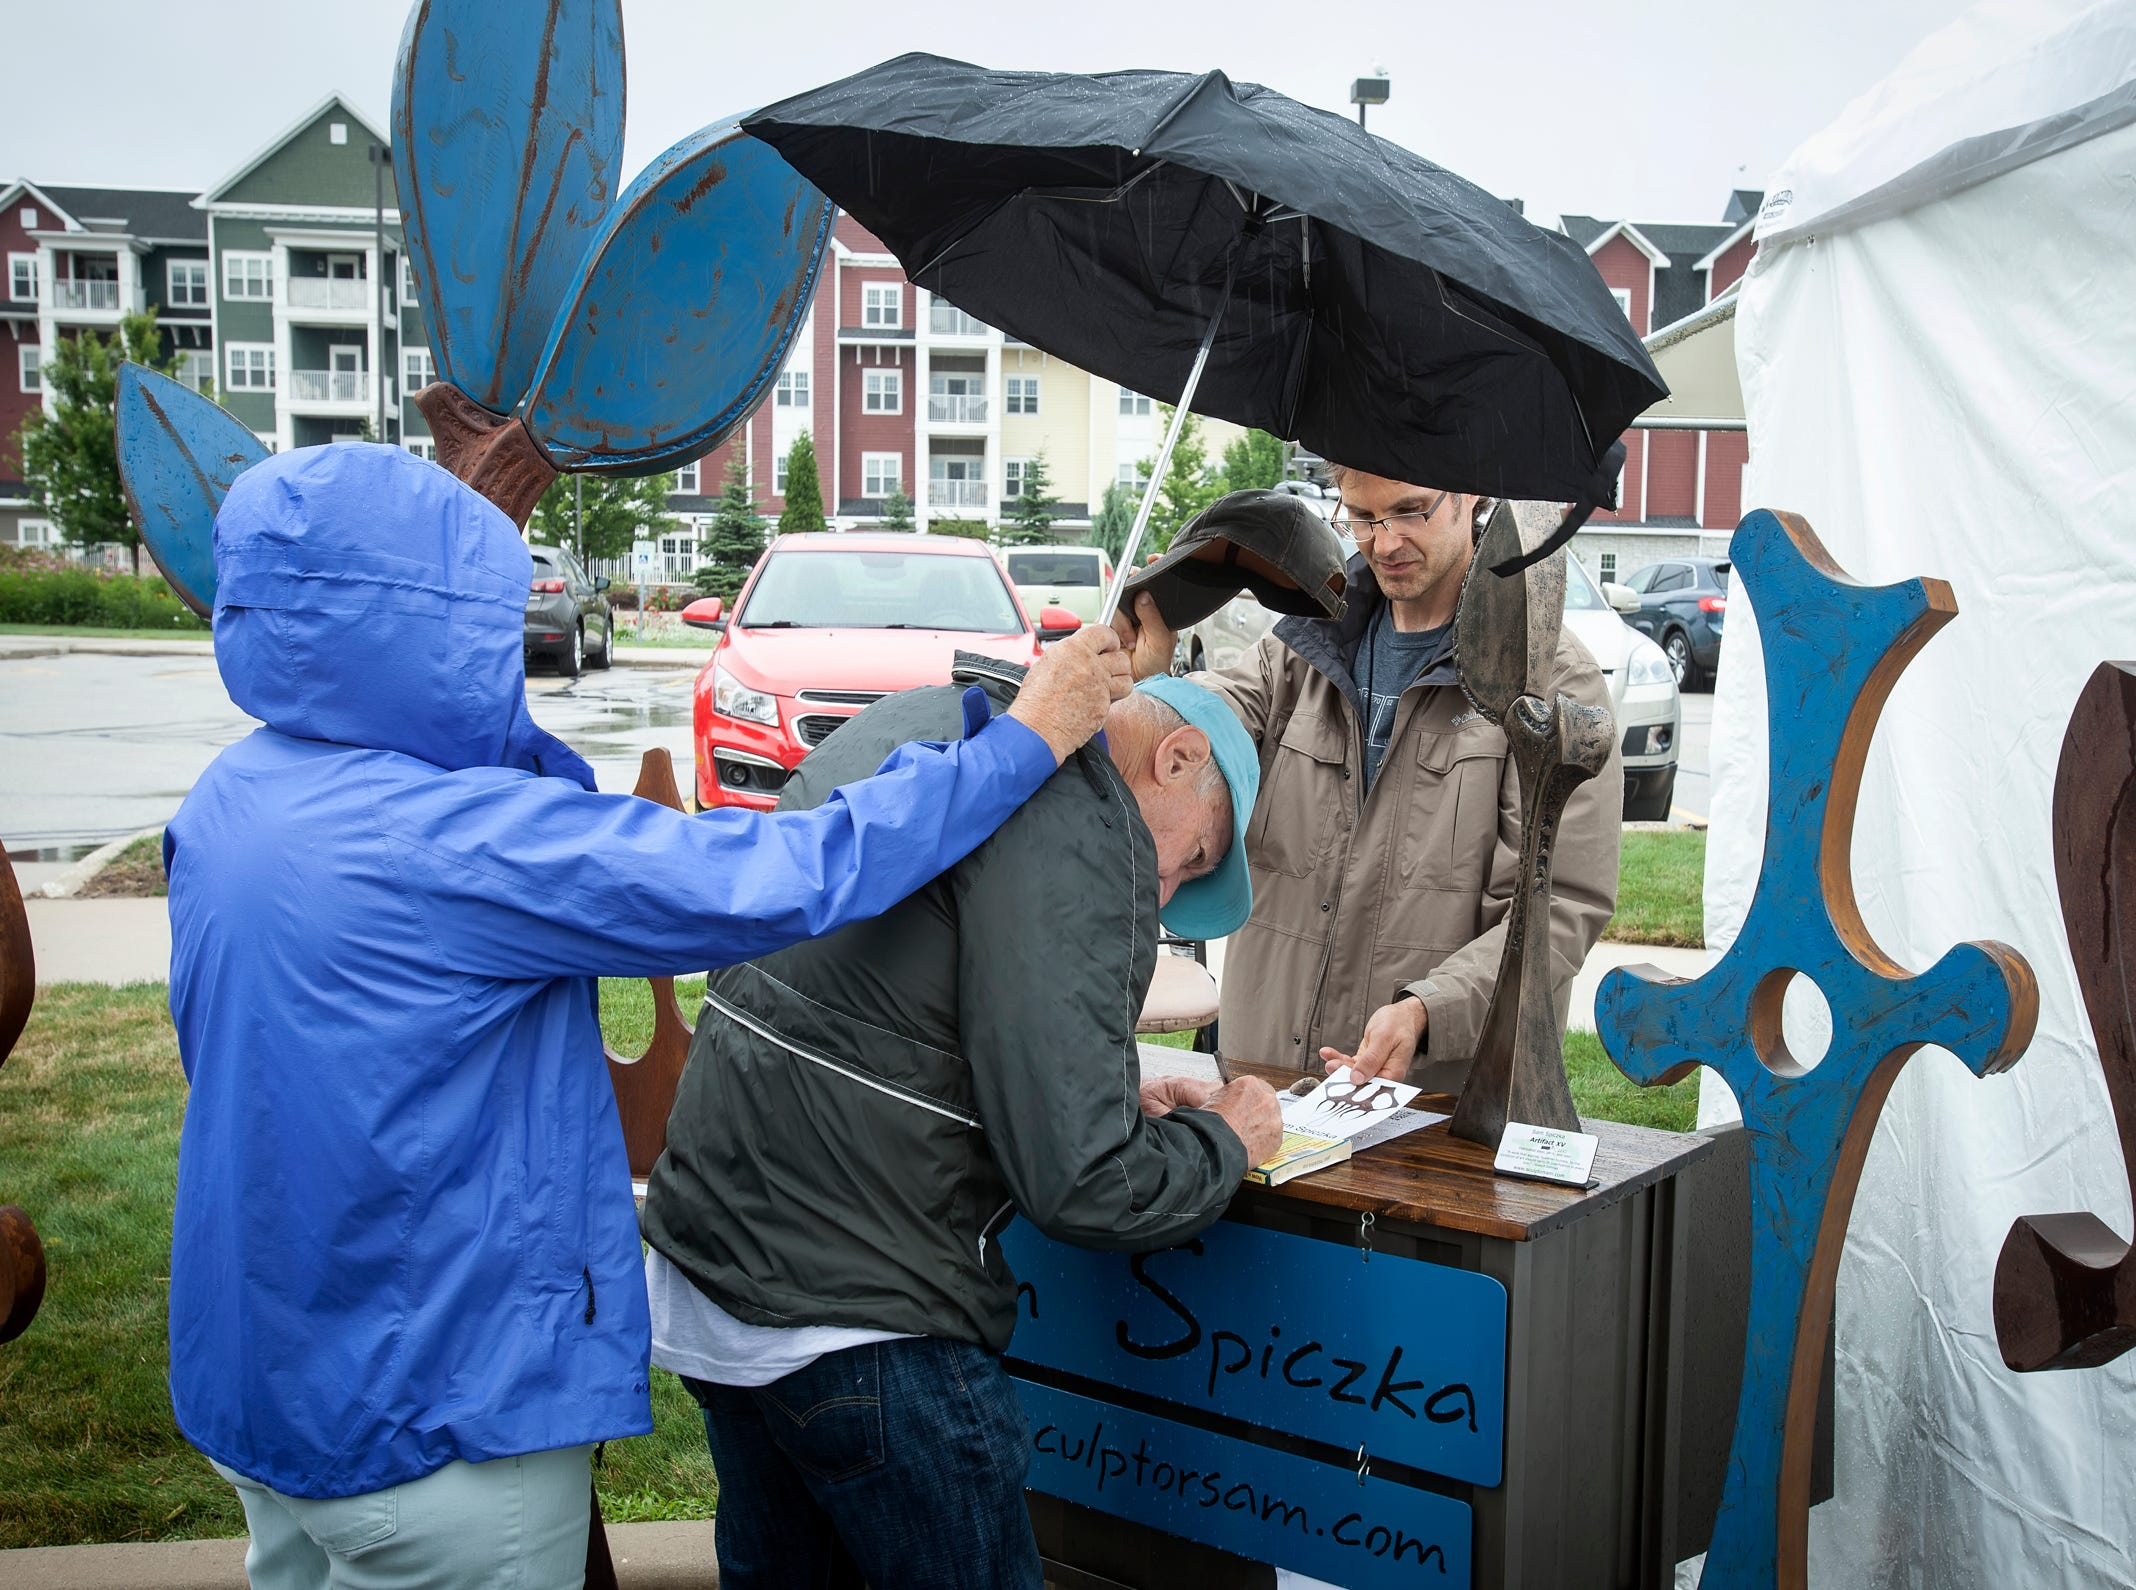 A purchase in the rain from sculptor Sam Spiczka at the Midsummer Festival of the Arts outside the John Michael Kohler Arts Center in Sheboygan on July 21.